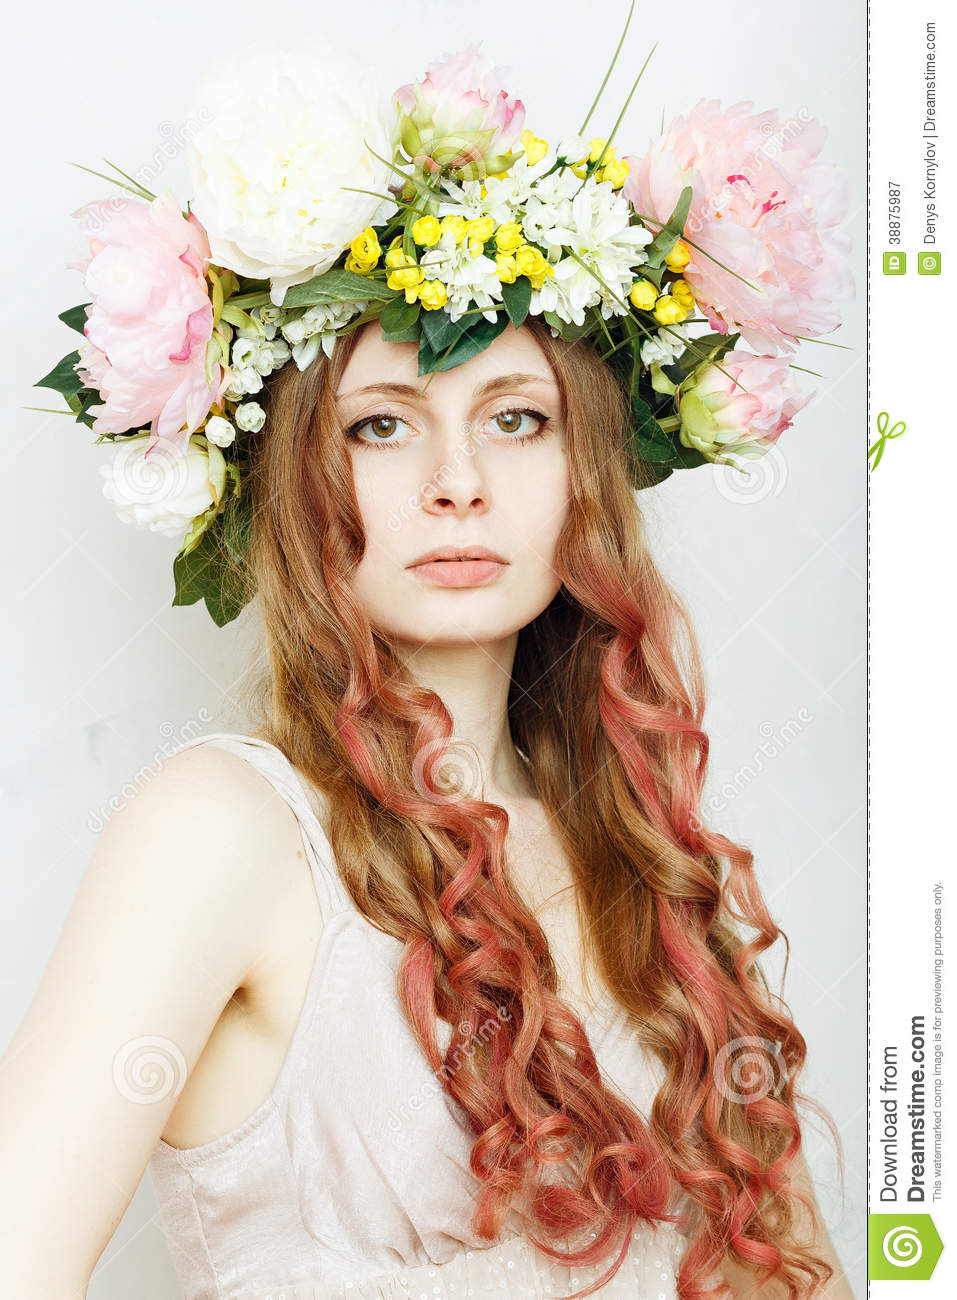 Pretty girl with flower crown on head stock image image of nature download pretty girl with flower crown on head stock image image of nature posing izmirmasajfo